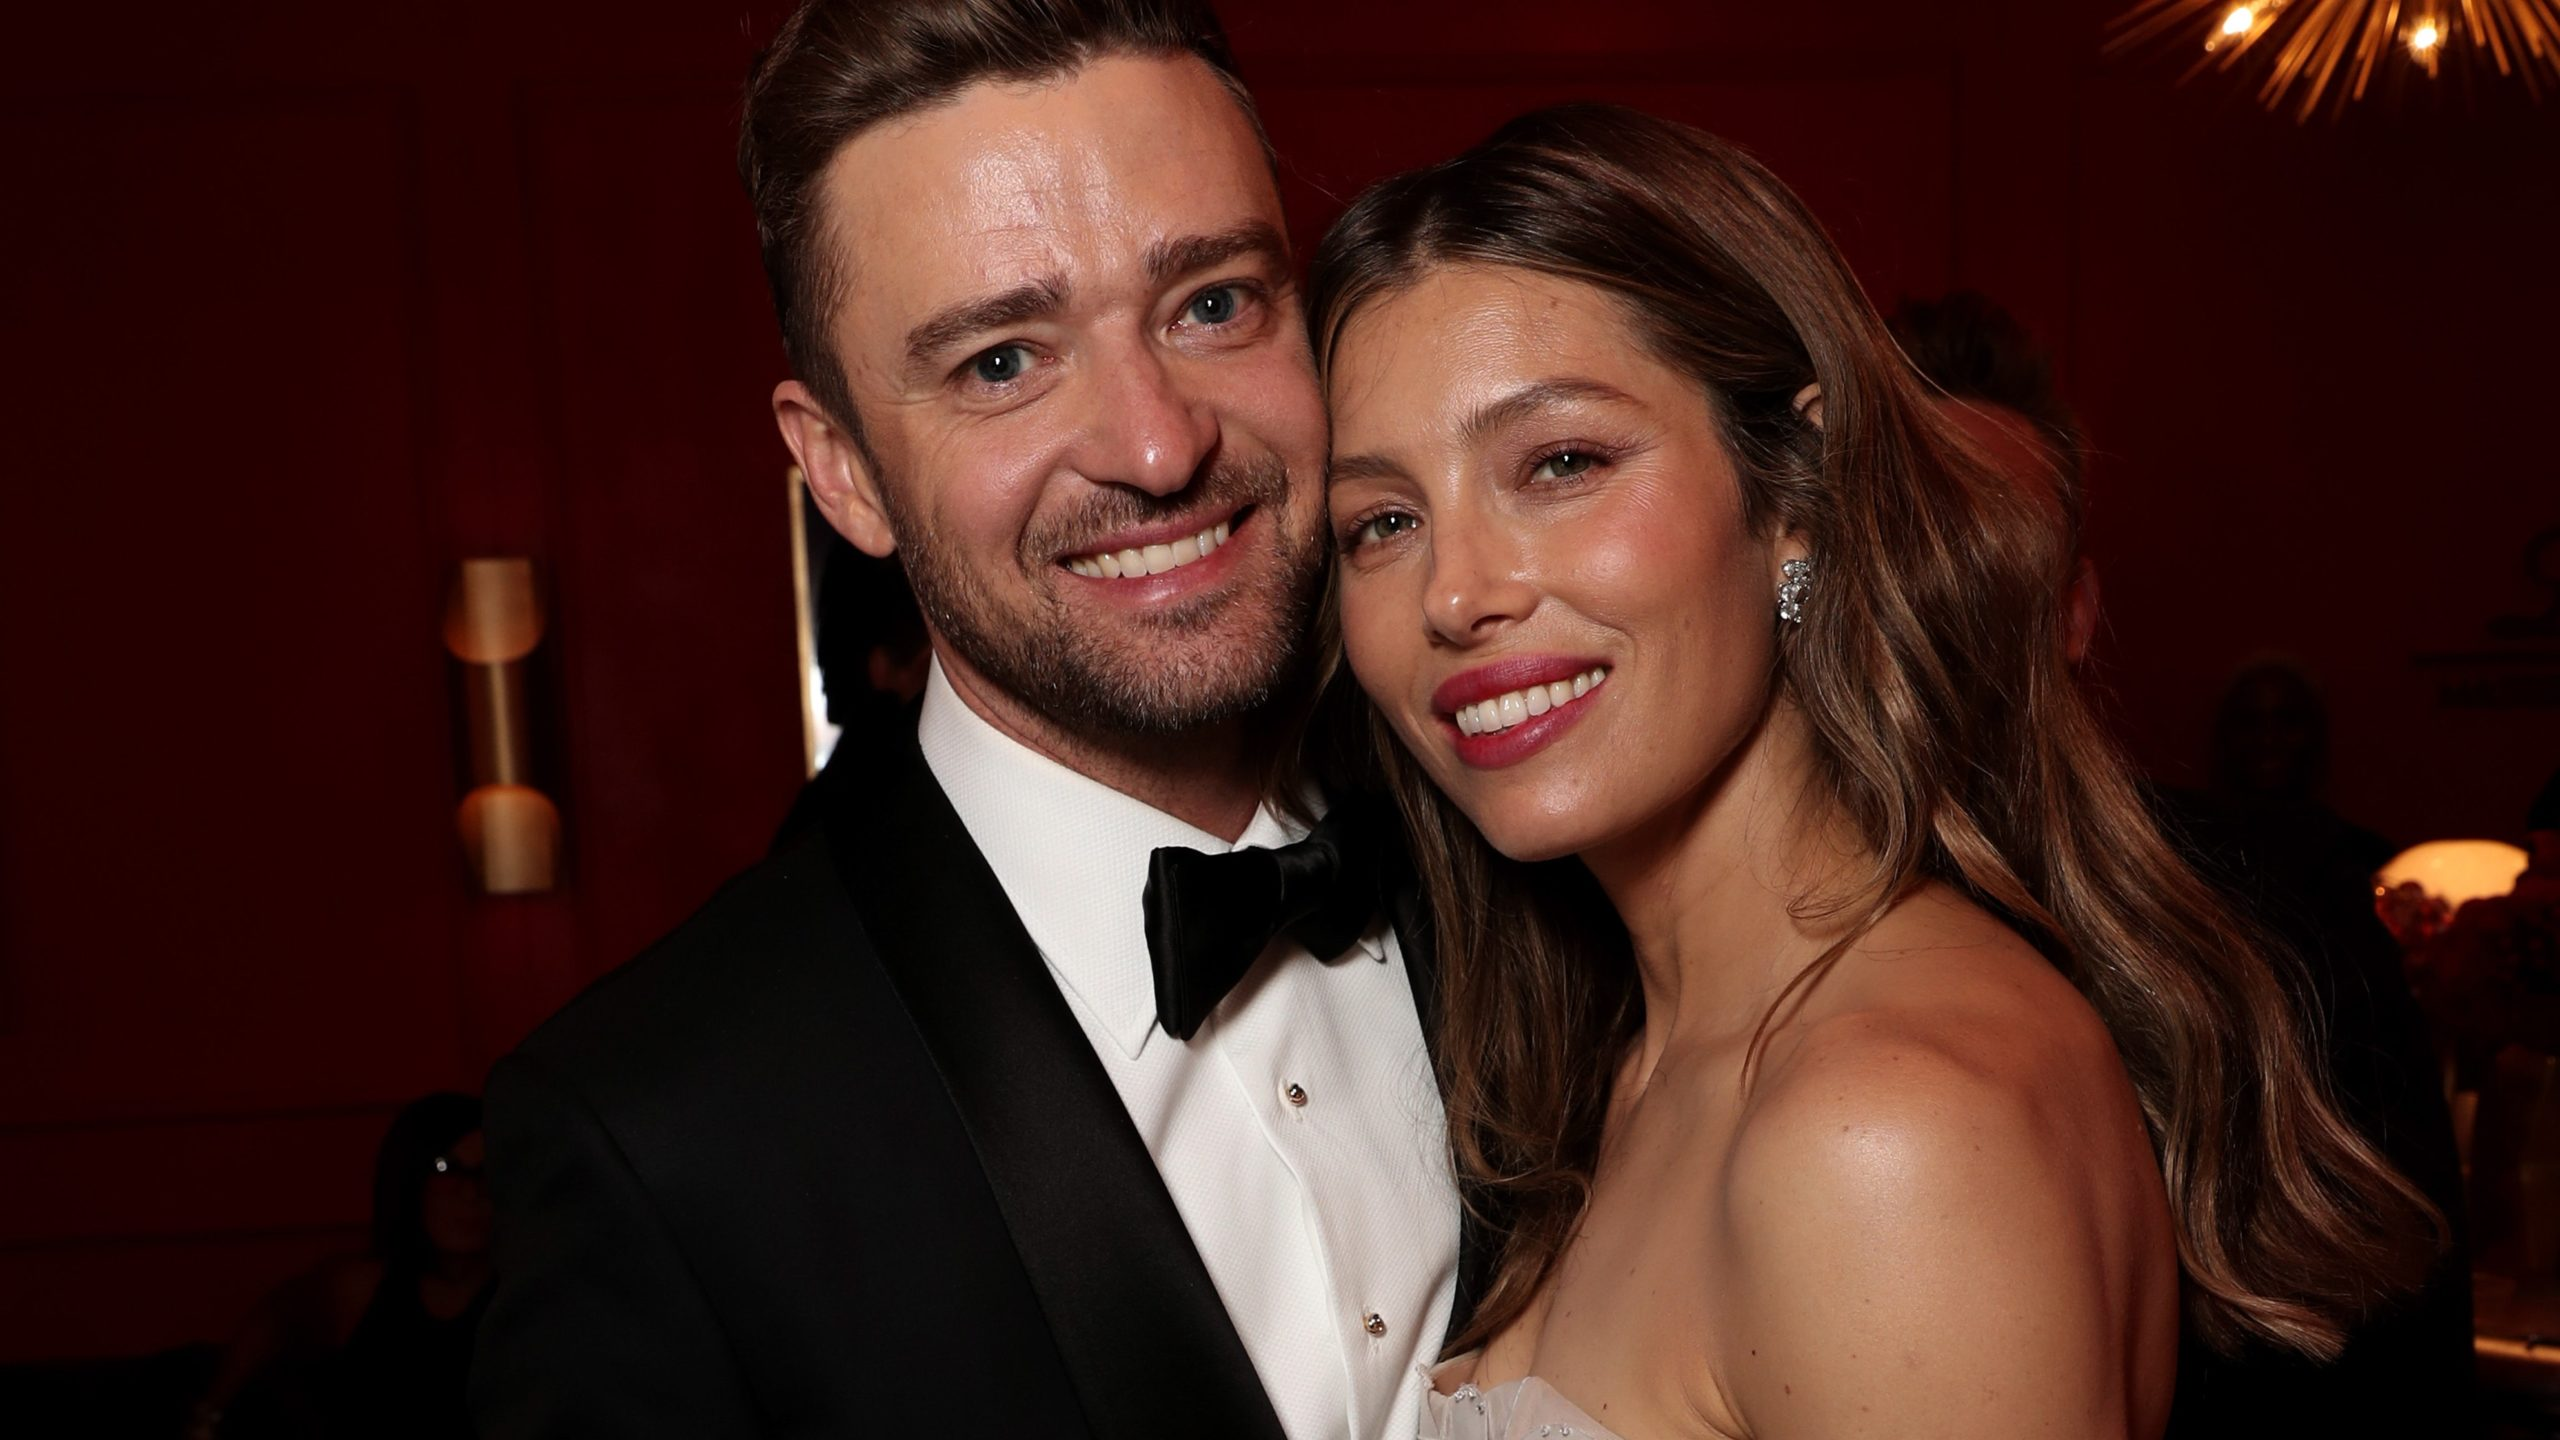 Justin Timberlake Banned By Girlfriend Jessica Biel from Working With Him After Making Cheating Allegations!